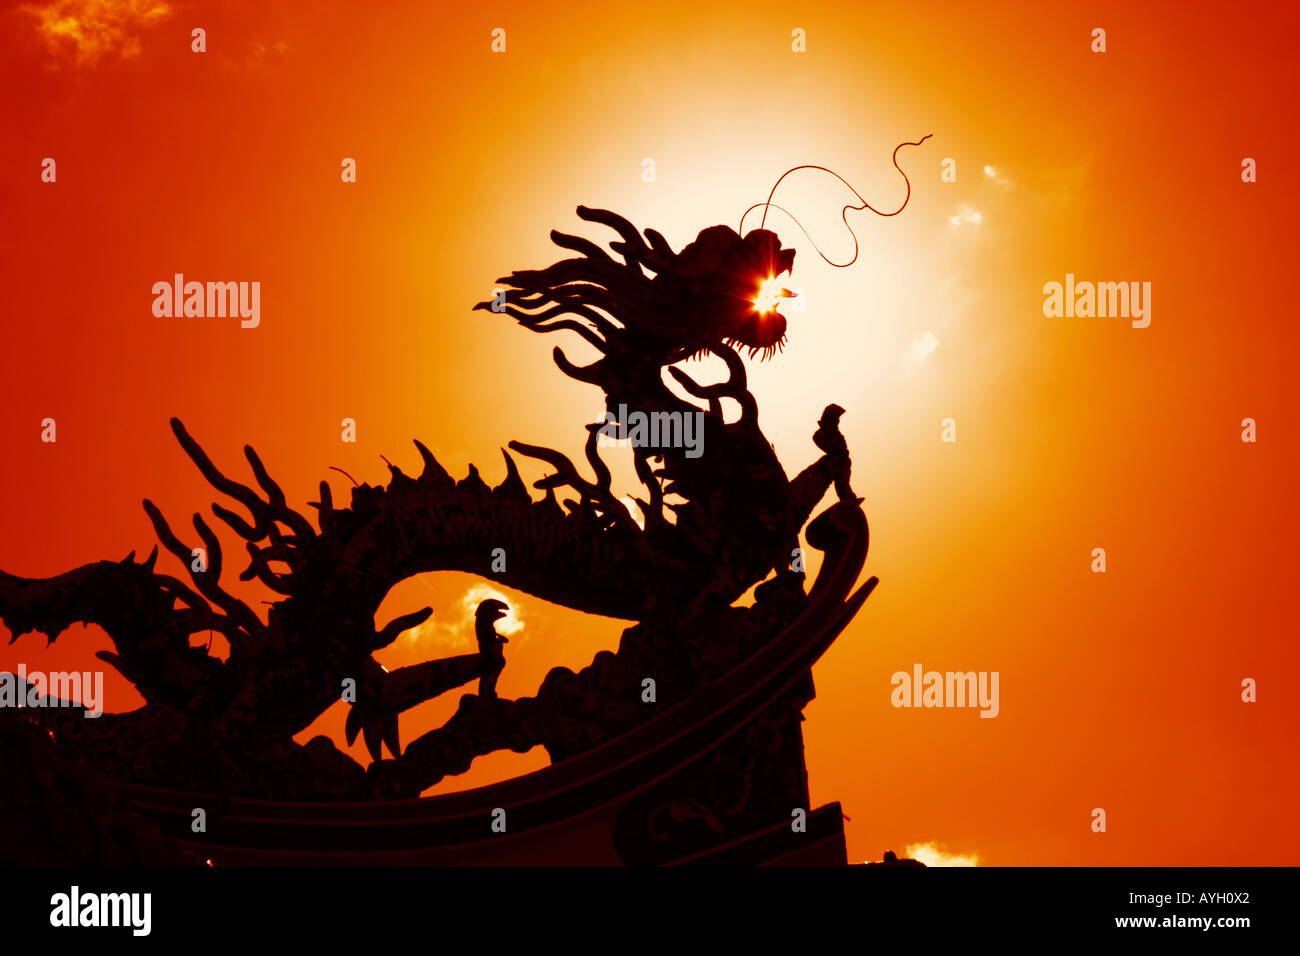 silhoutte of dragon carving on Chinese temple roof with dramatic red bloodlight - Stock Image